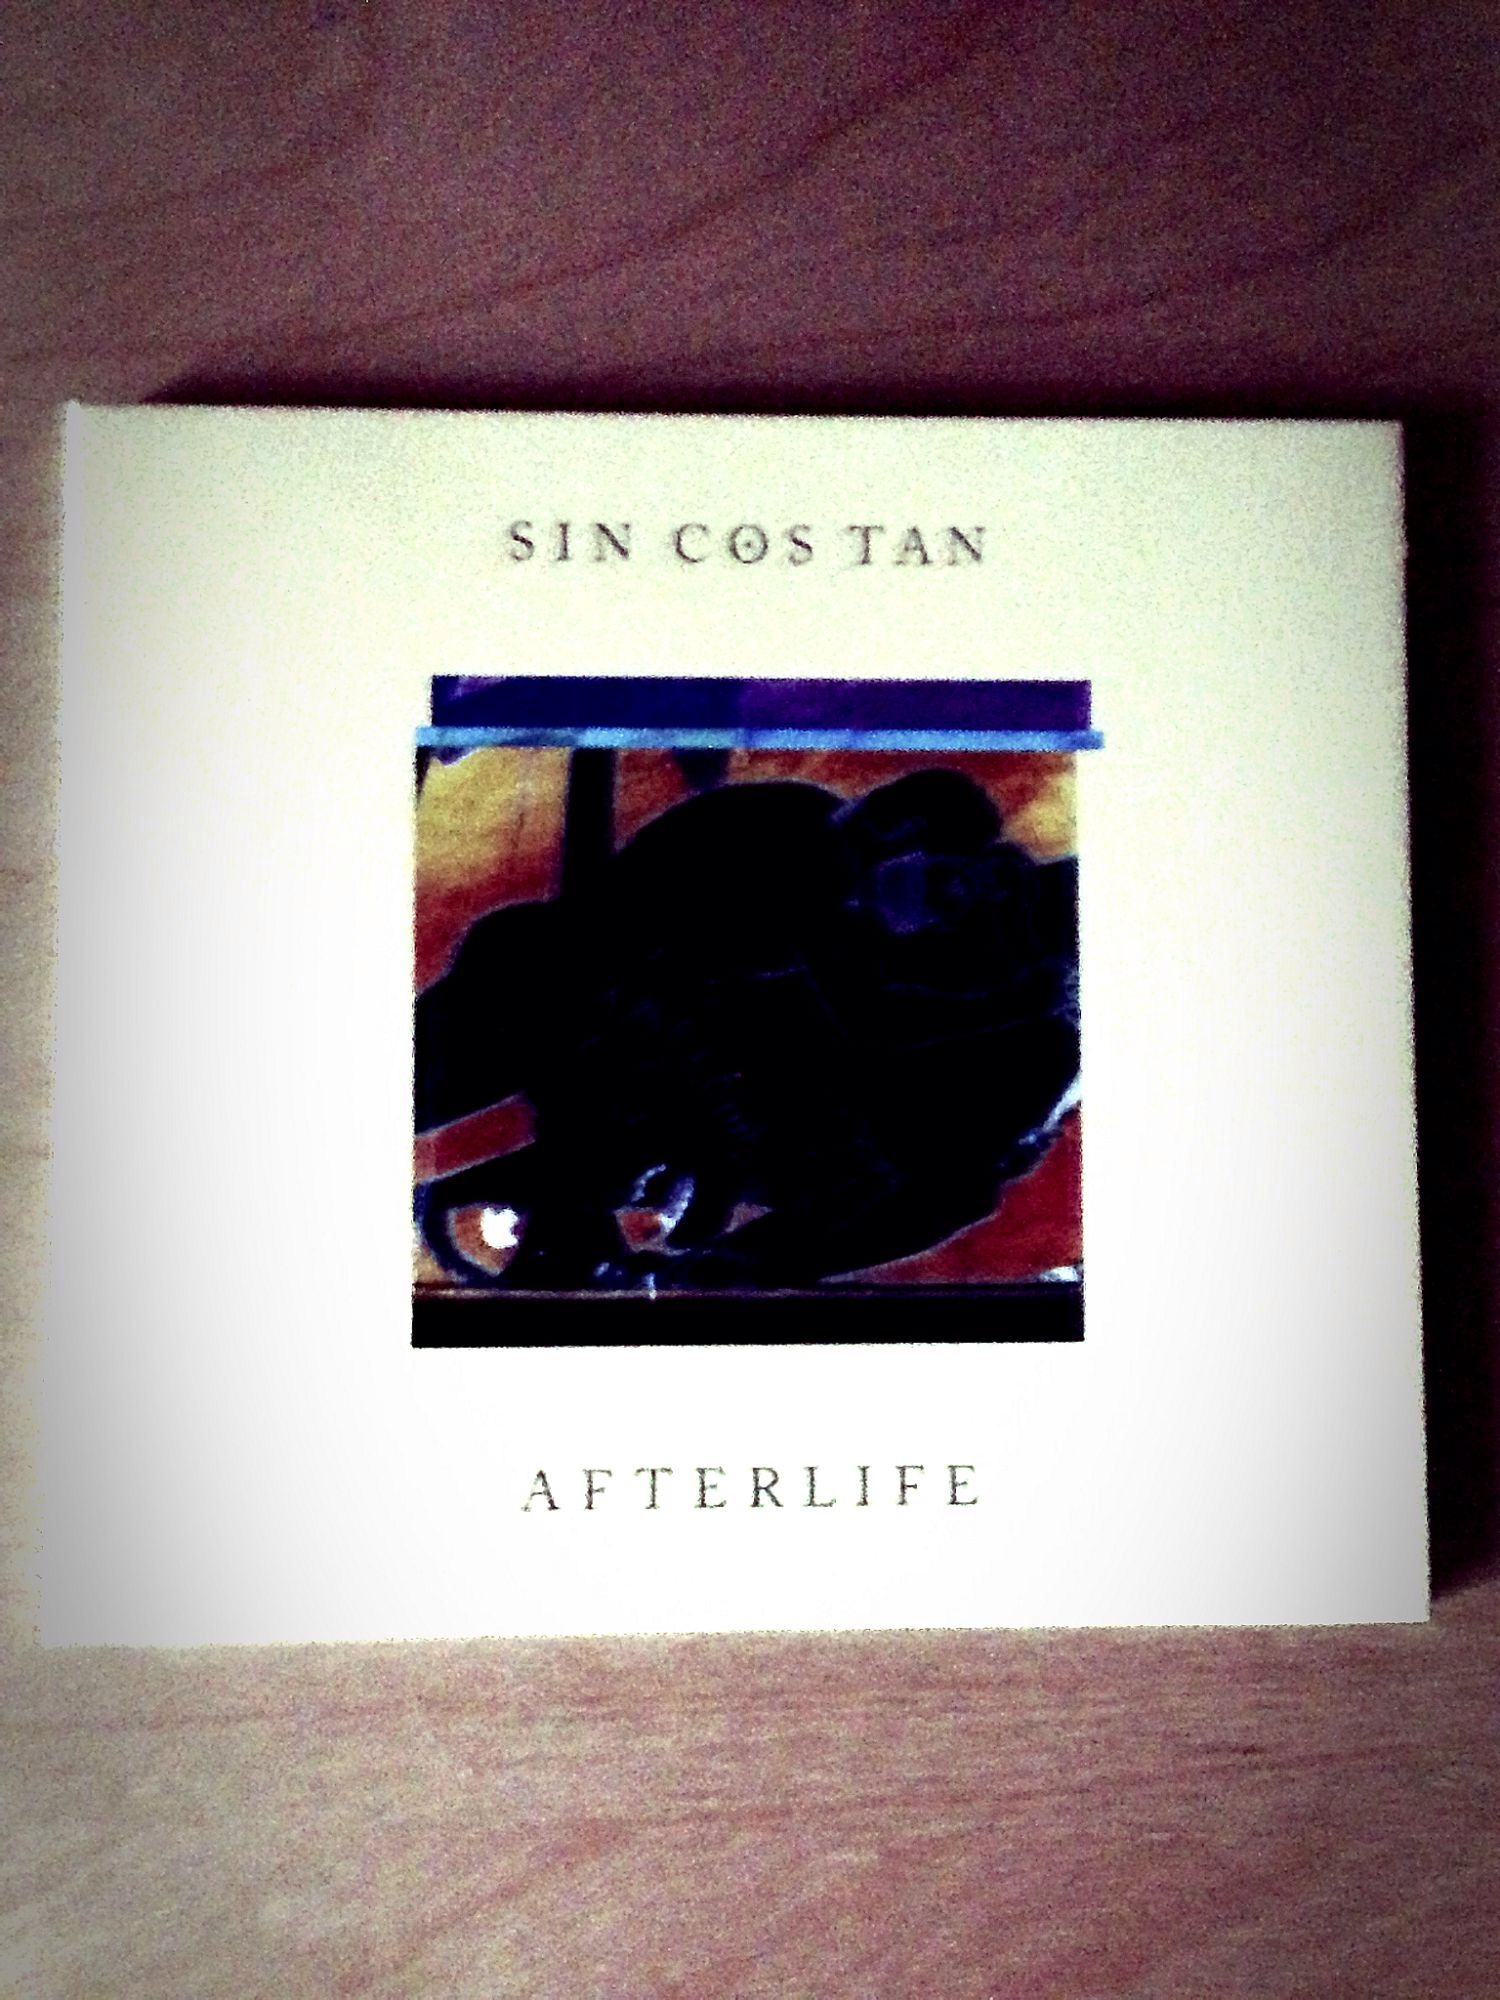 Really enjoying the second SIN COS TAN album. More solid than the debut